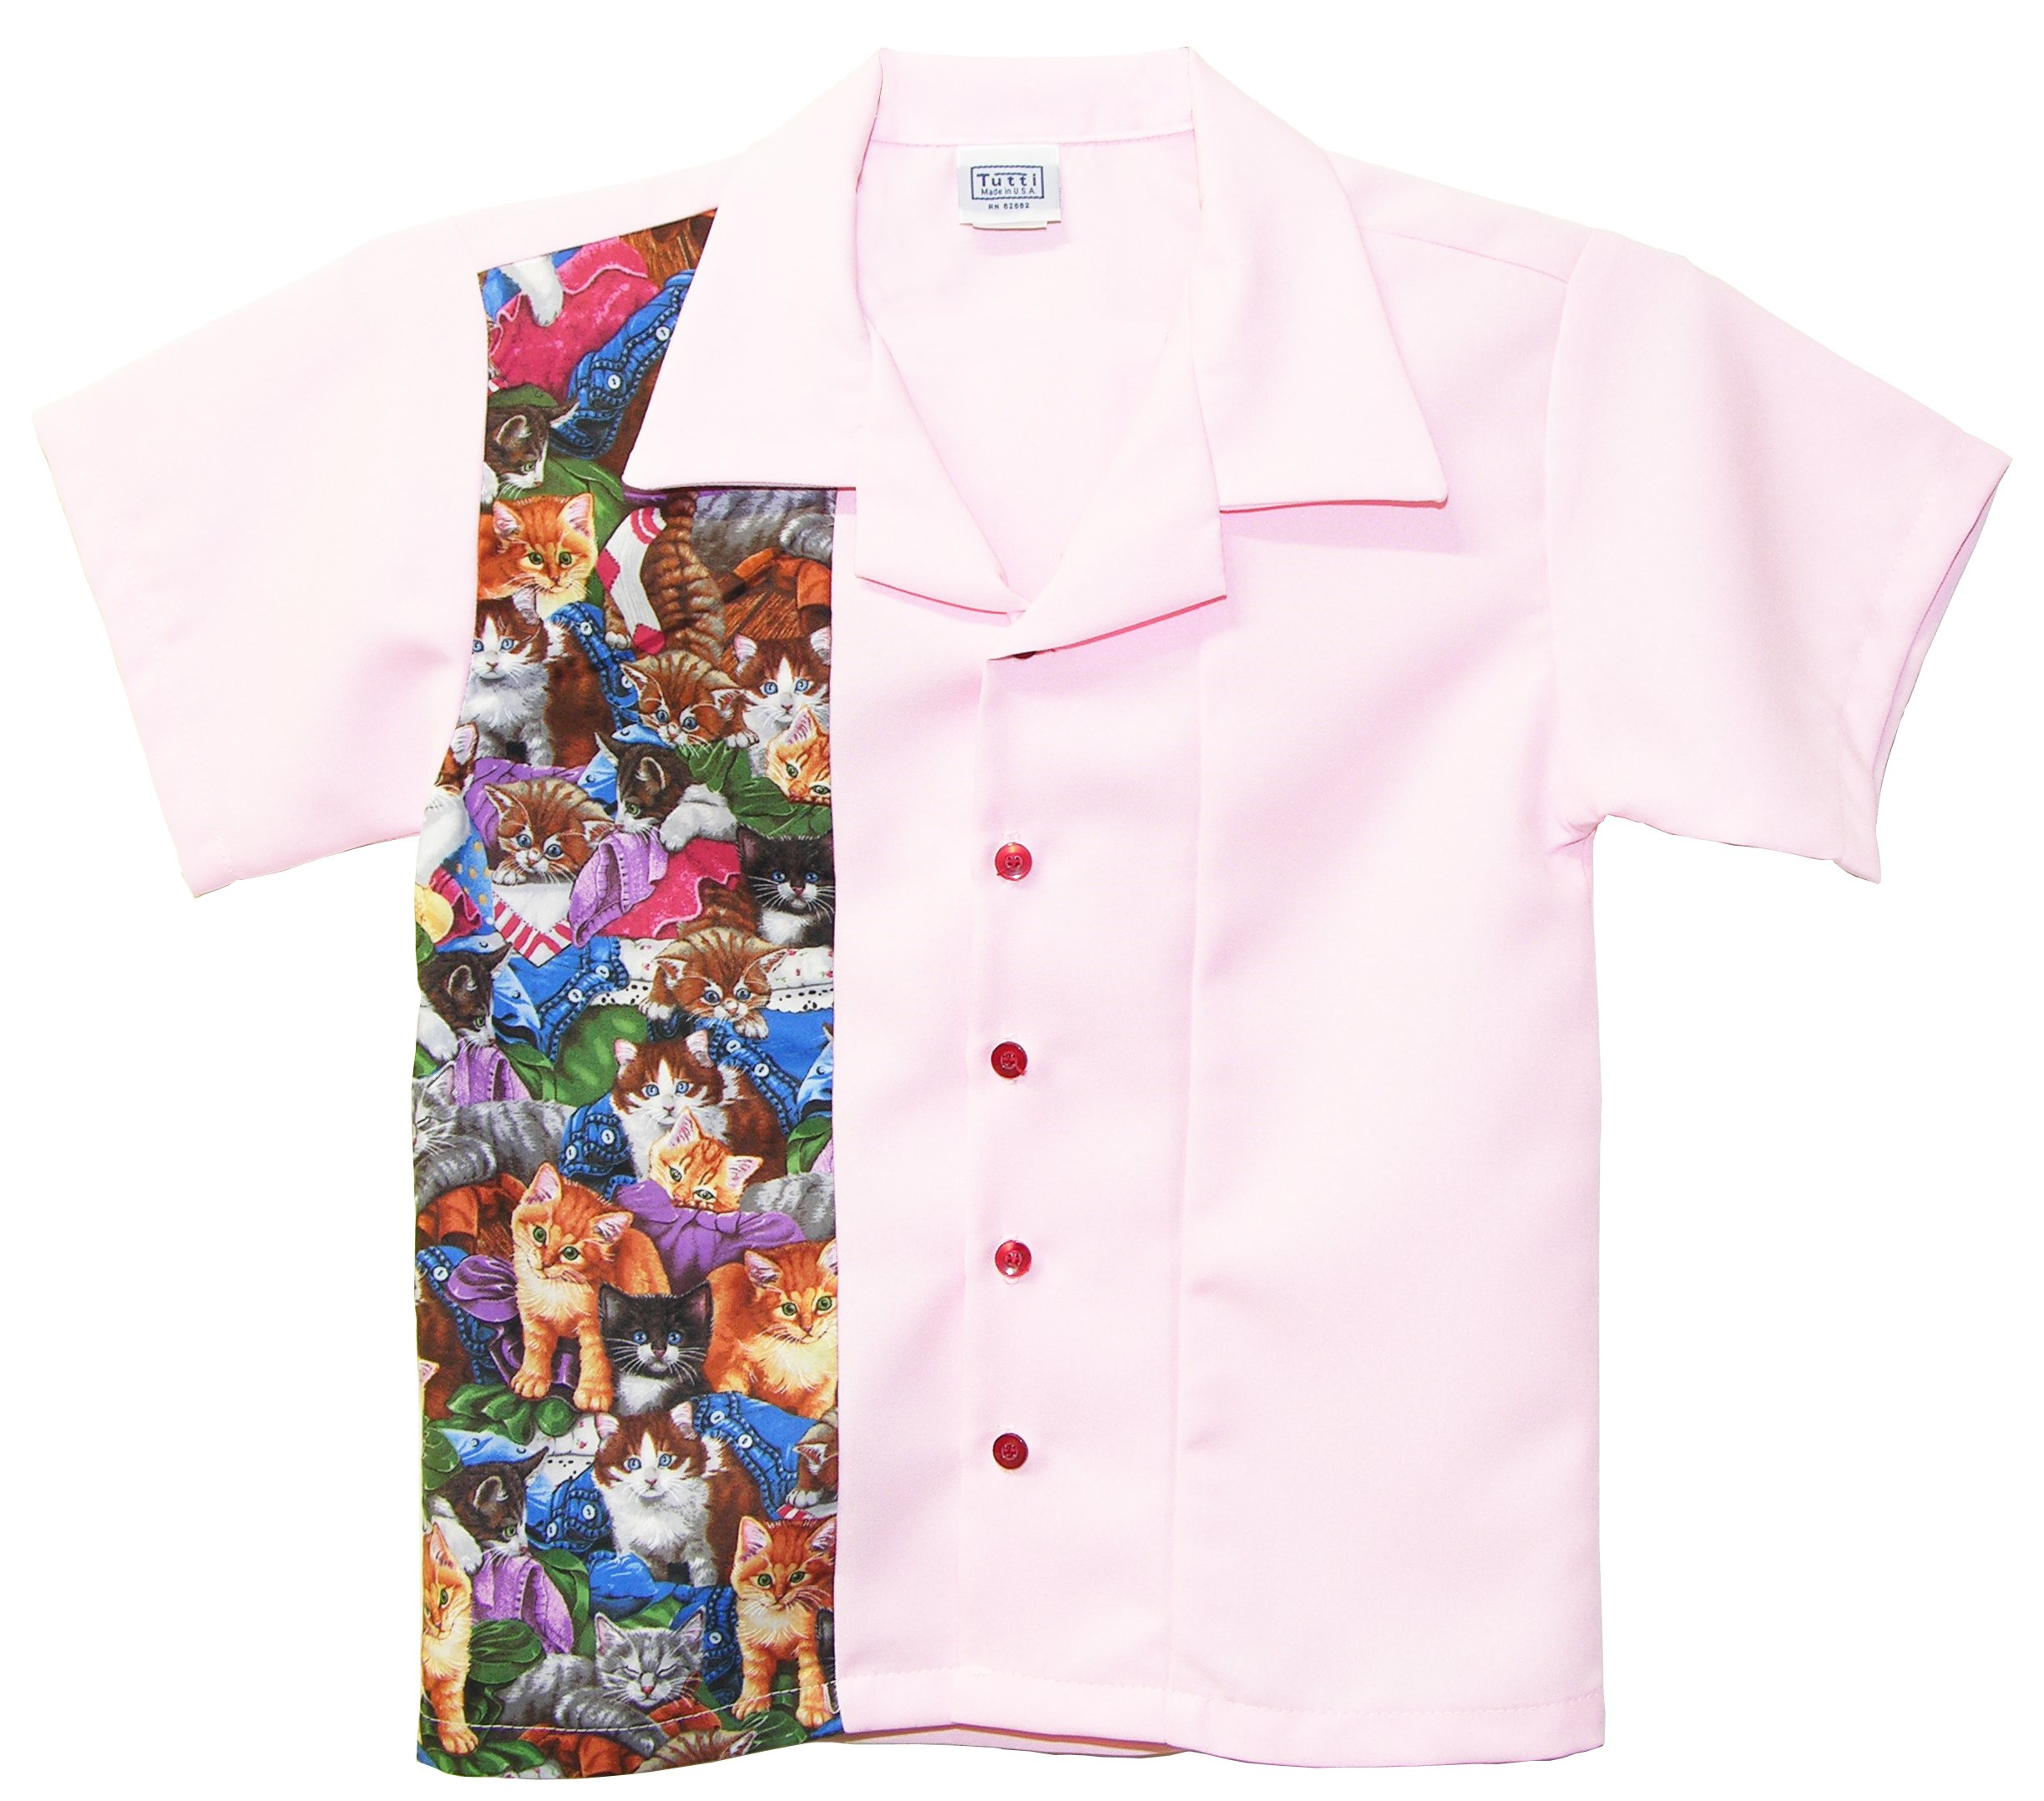 Kids Bowling Shirt Children Size Pink with Cute Cat Print (Large 6-7 Yrs Old)